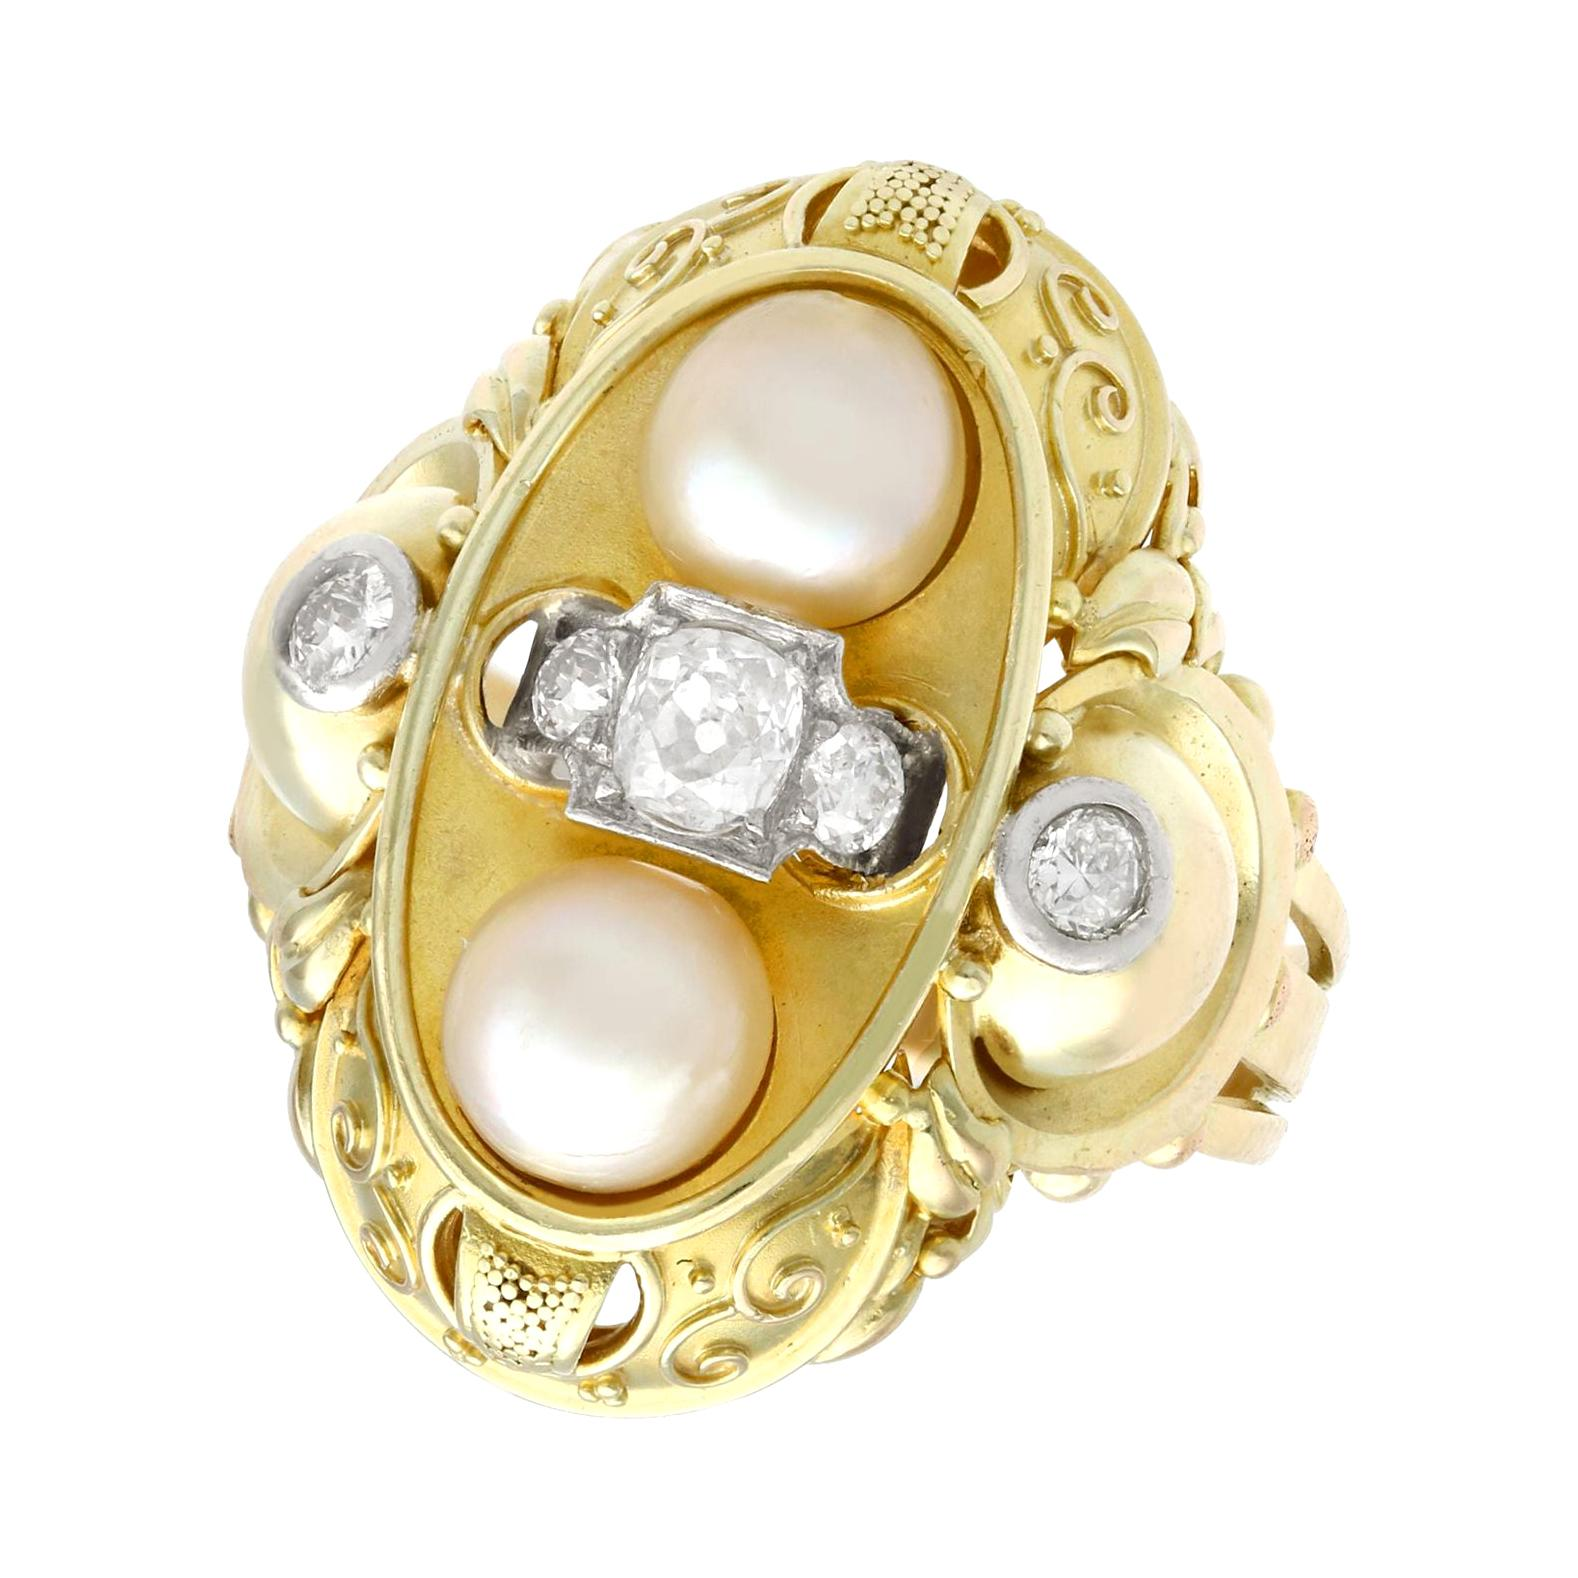 Vintage 1950s German Pearl Diamond Yellow Gold Cocktail Ring